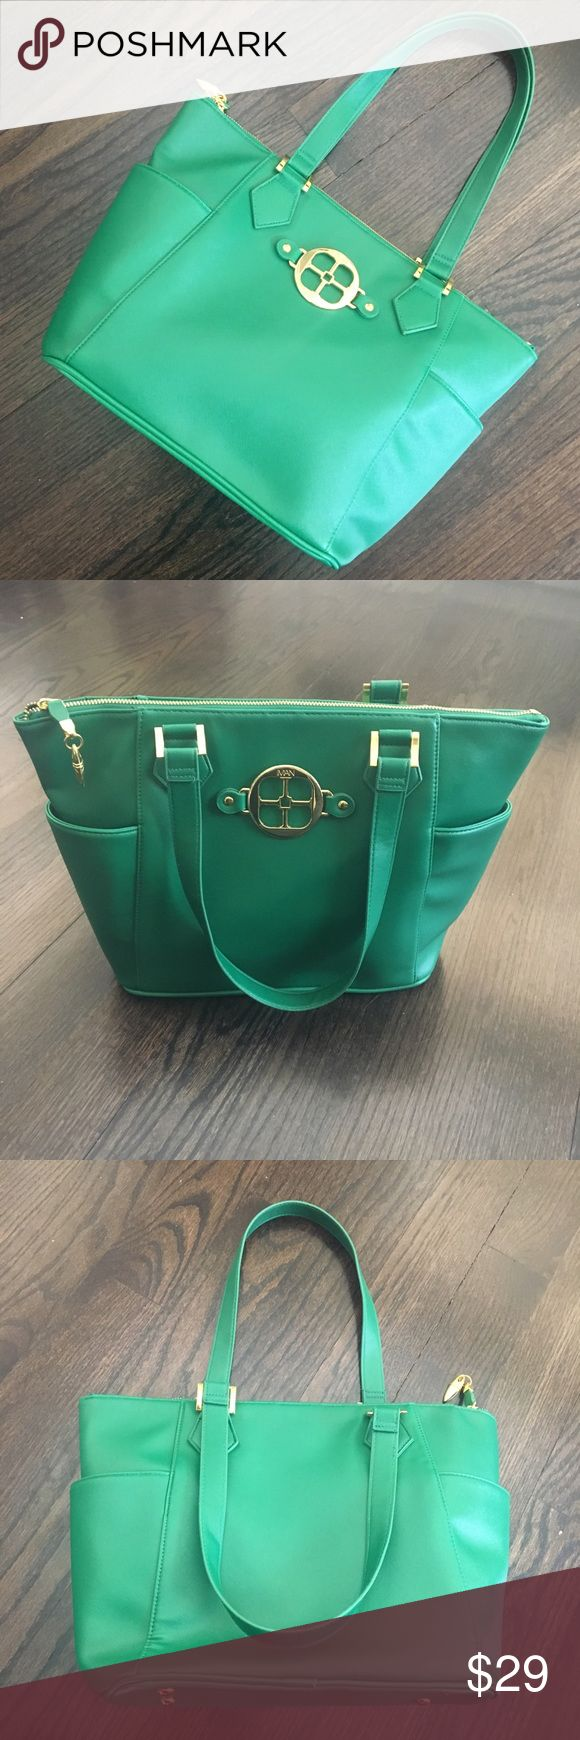 NWOT Iman Green & Gold Zip up Tote Bag New, never used. Green faux leather zip up Tote by Iman. Gold hardware. Interior is fully lined and has a zip pocket and 2 cell pockets. Iman Bags Totes